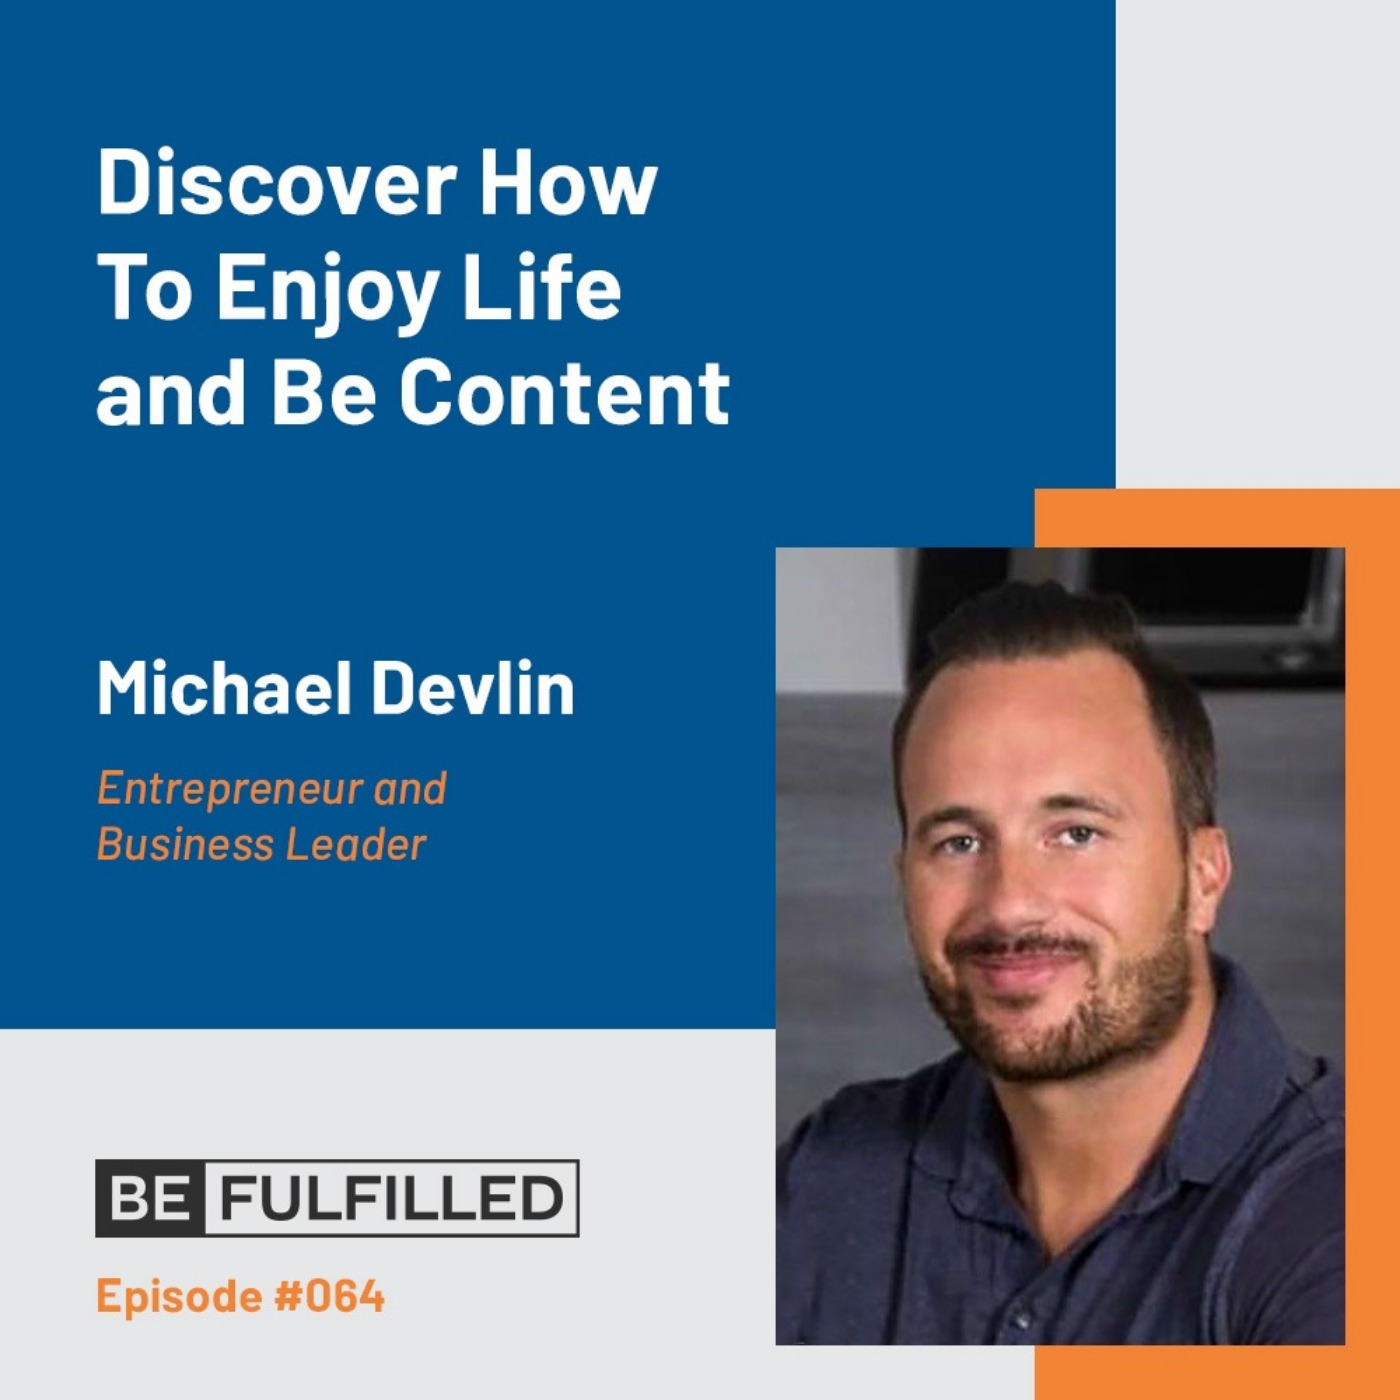 Discover How To Enjoy Life and Be Content - Michael Devlin